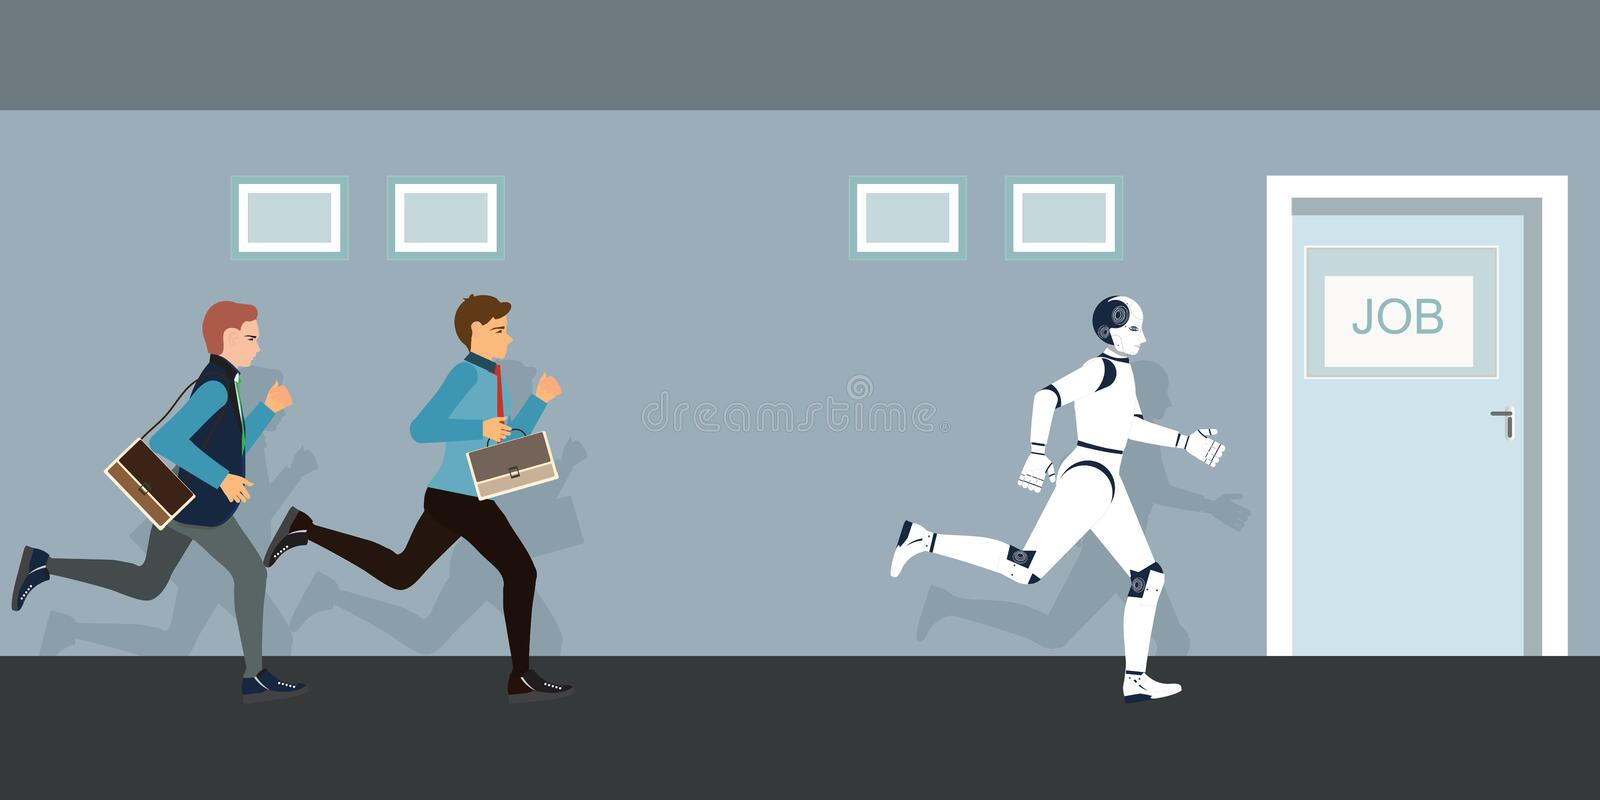 Business People and robot competing to job door stock illustration